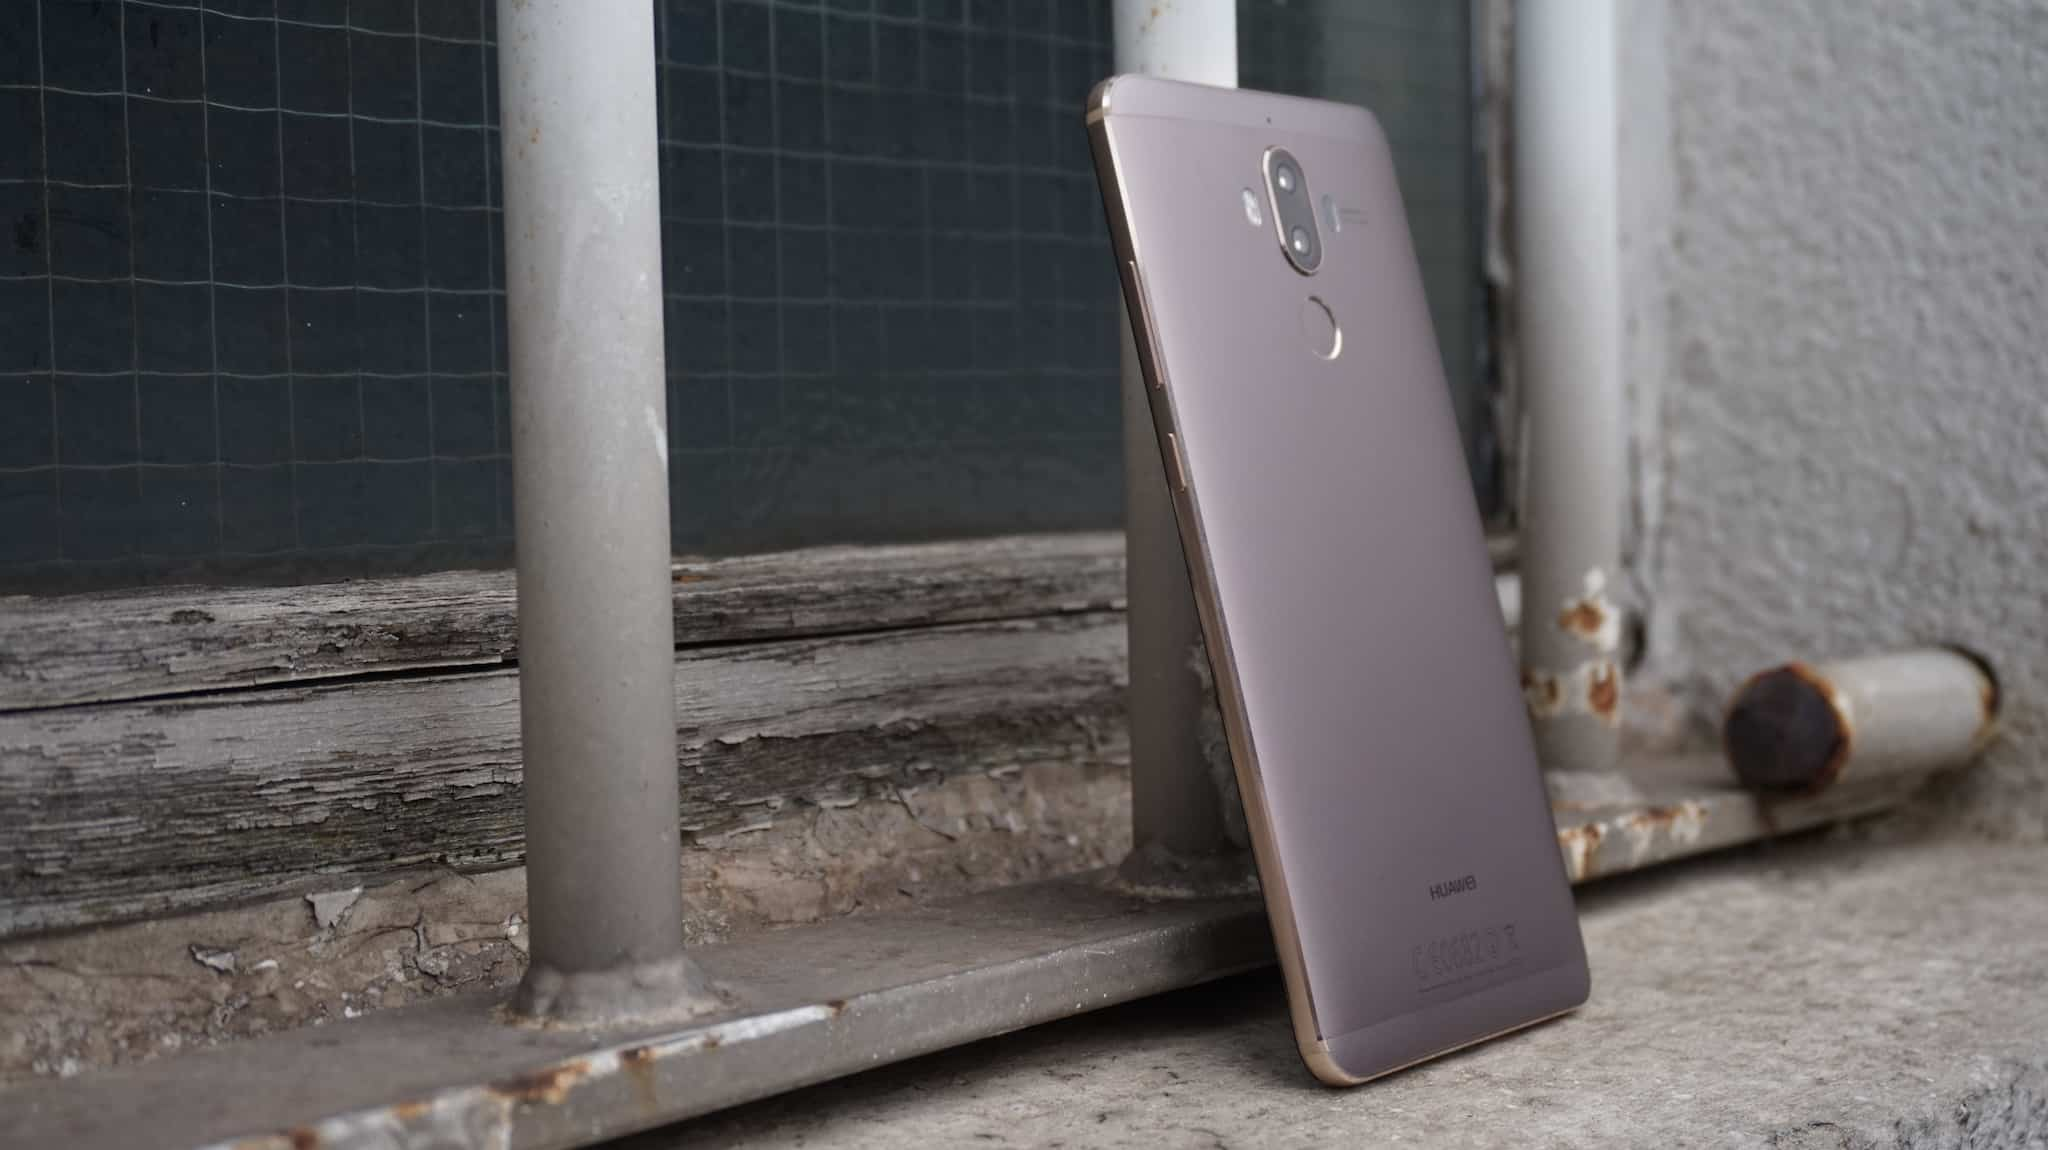 5-huawei-mate-9-review